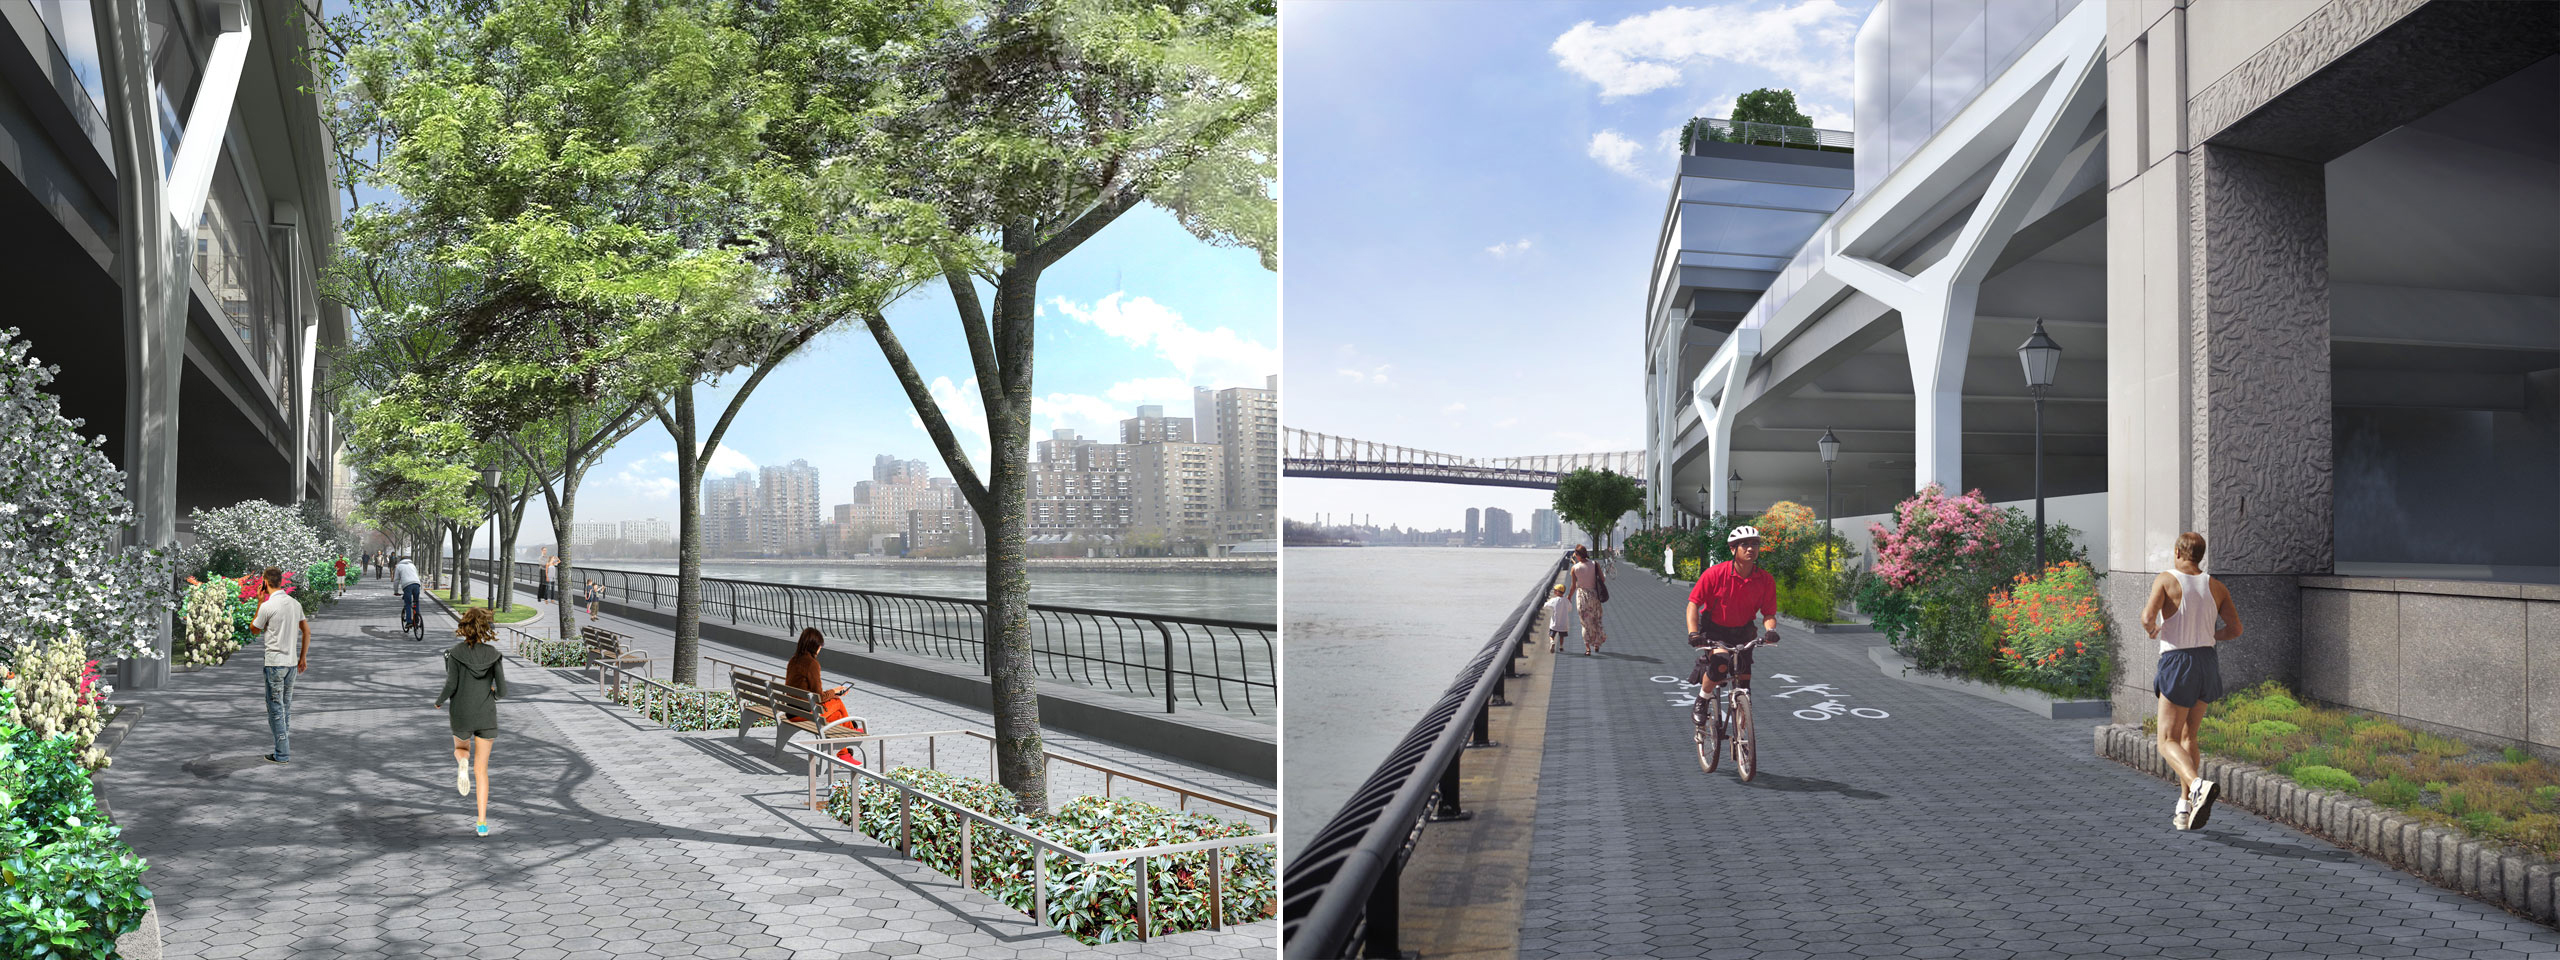 Renderings of the East River Esplanade, facing north and south, following the expansion of Rockefeller University. Credit: Rockefeller University.